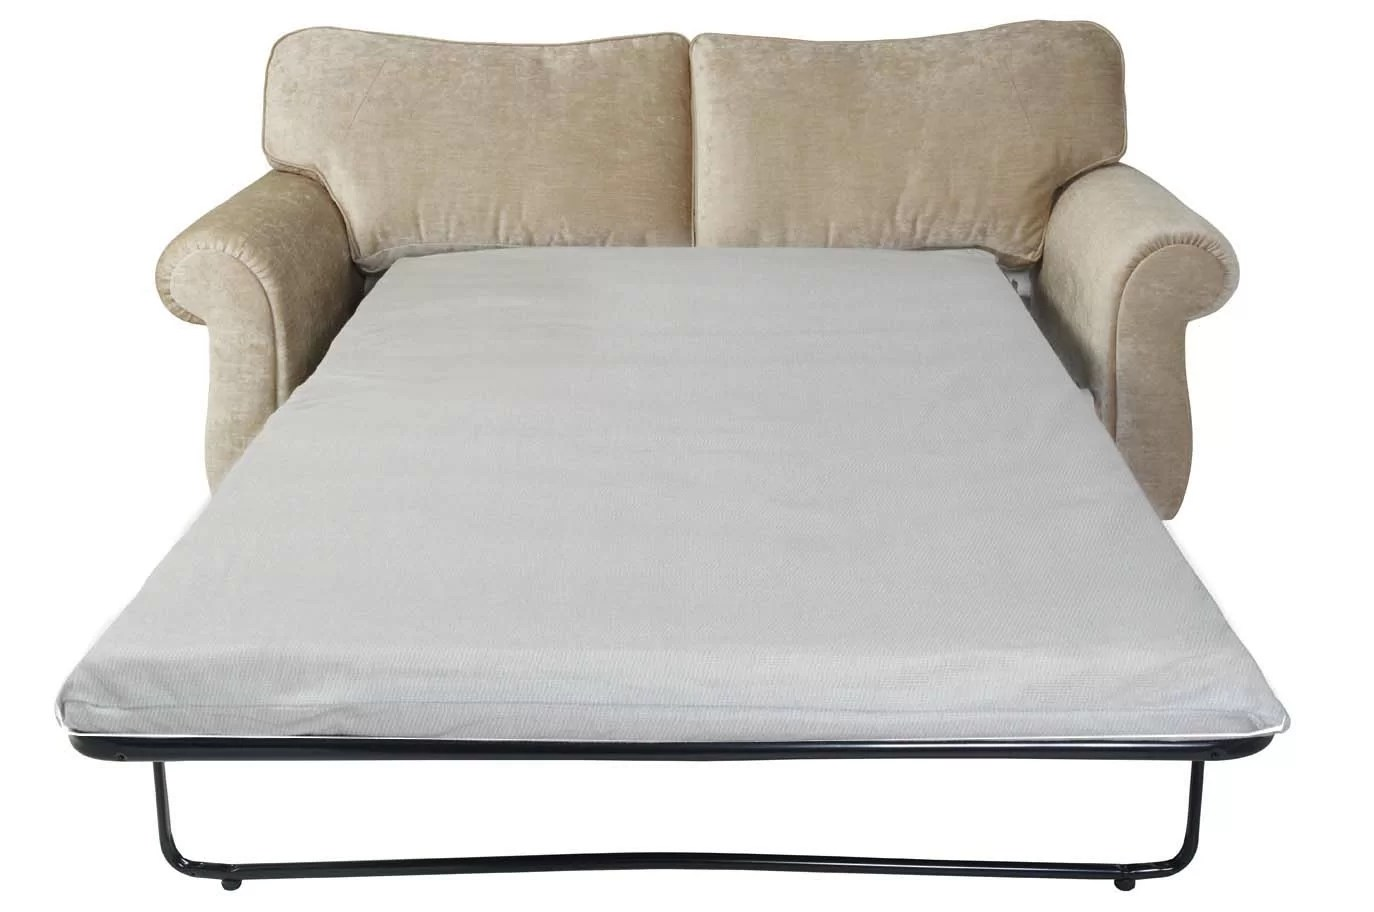 72 inch sofa bed istikbal lebanon 4 75 quot gel infused memory foam mattress and contour